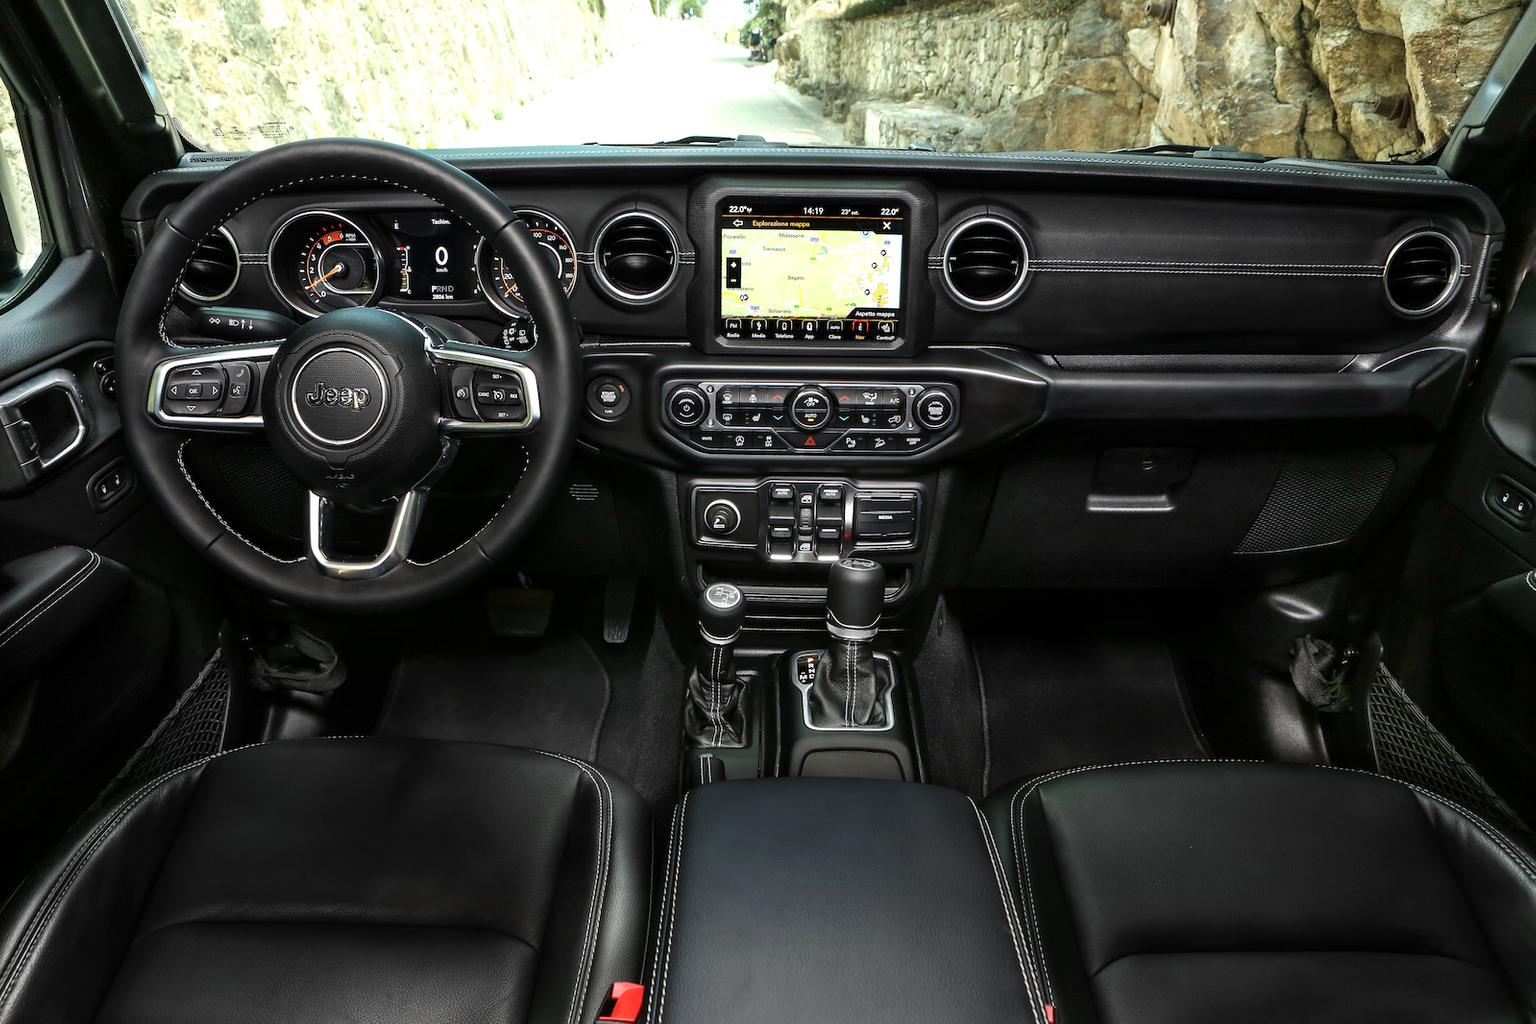 2018 Jeep Wrangler review – price, specs and release date